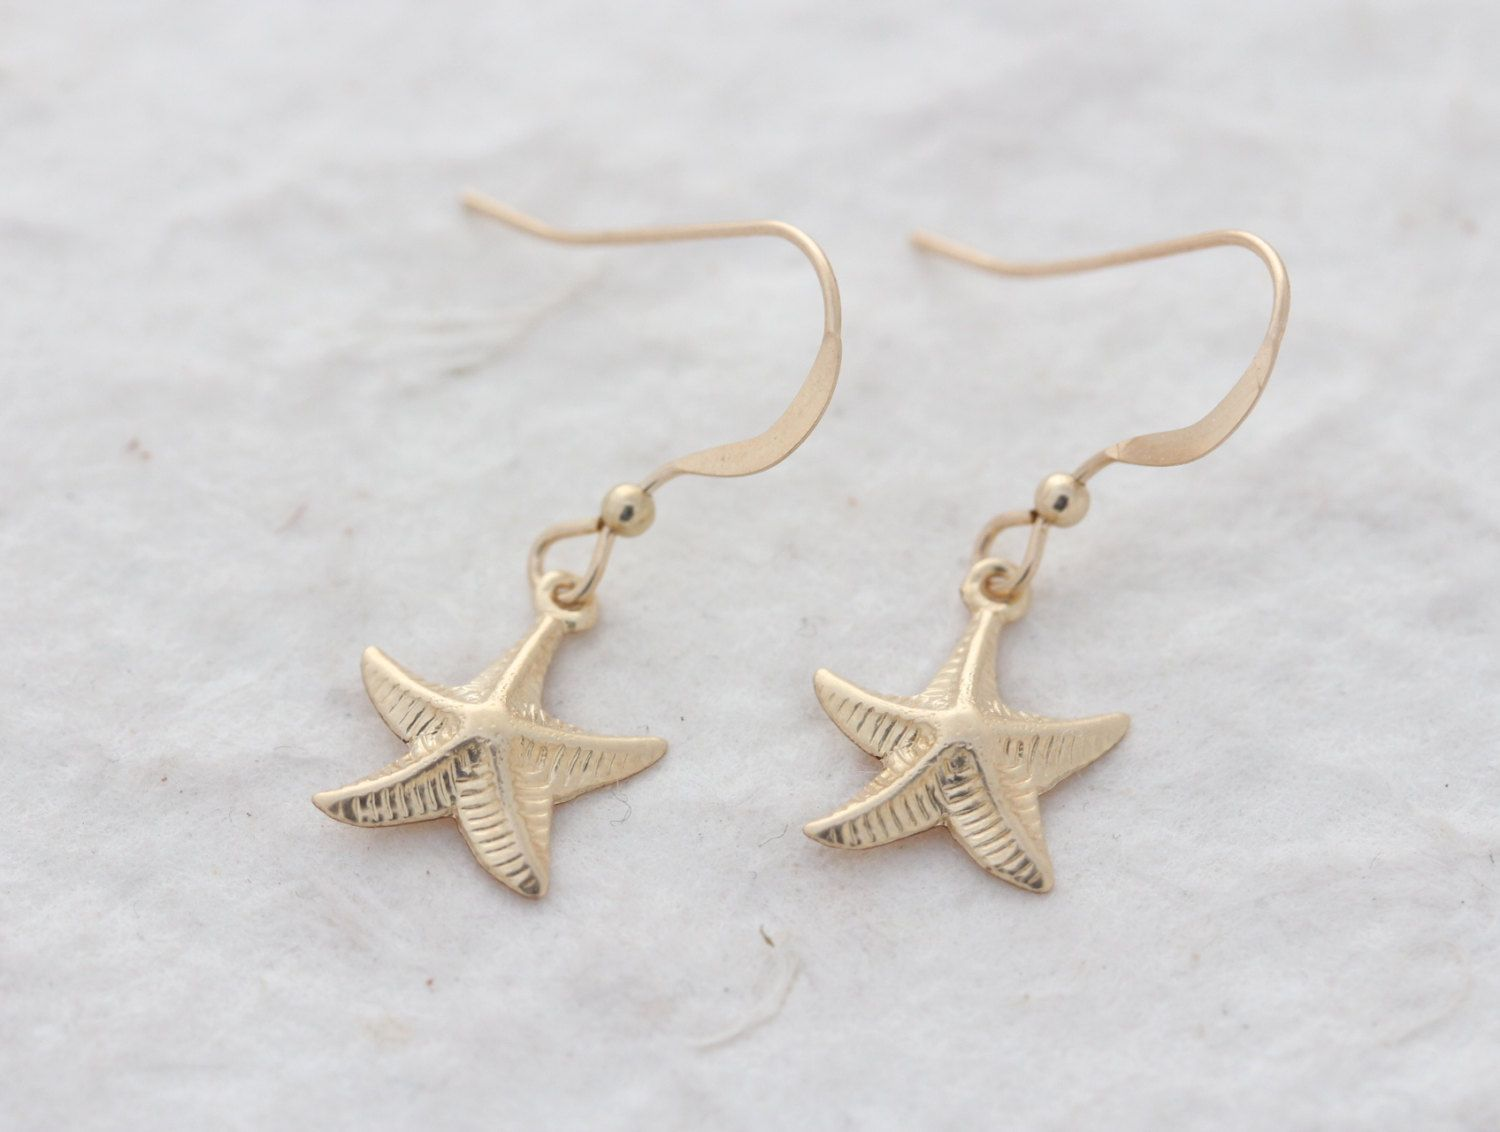 Gold Starfish Earrings, Gold Filled Starfish Earrings, Lightweight, Dainty  Gold Earrings, Gold